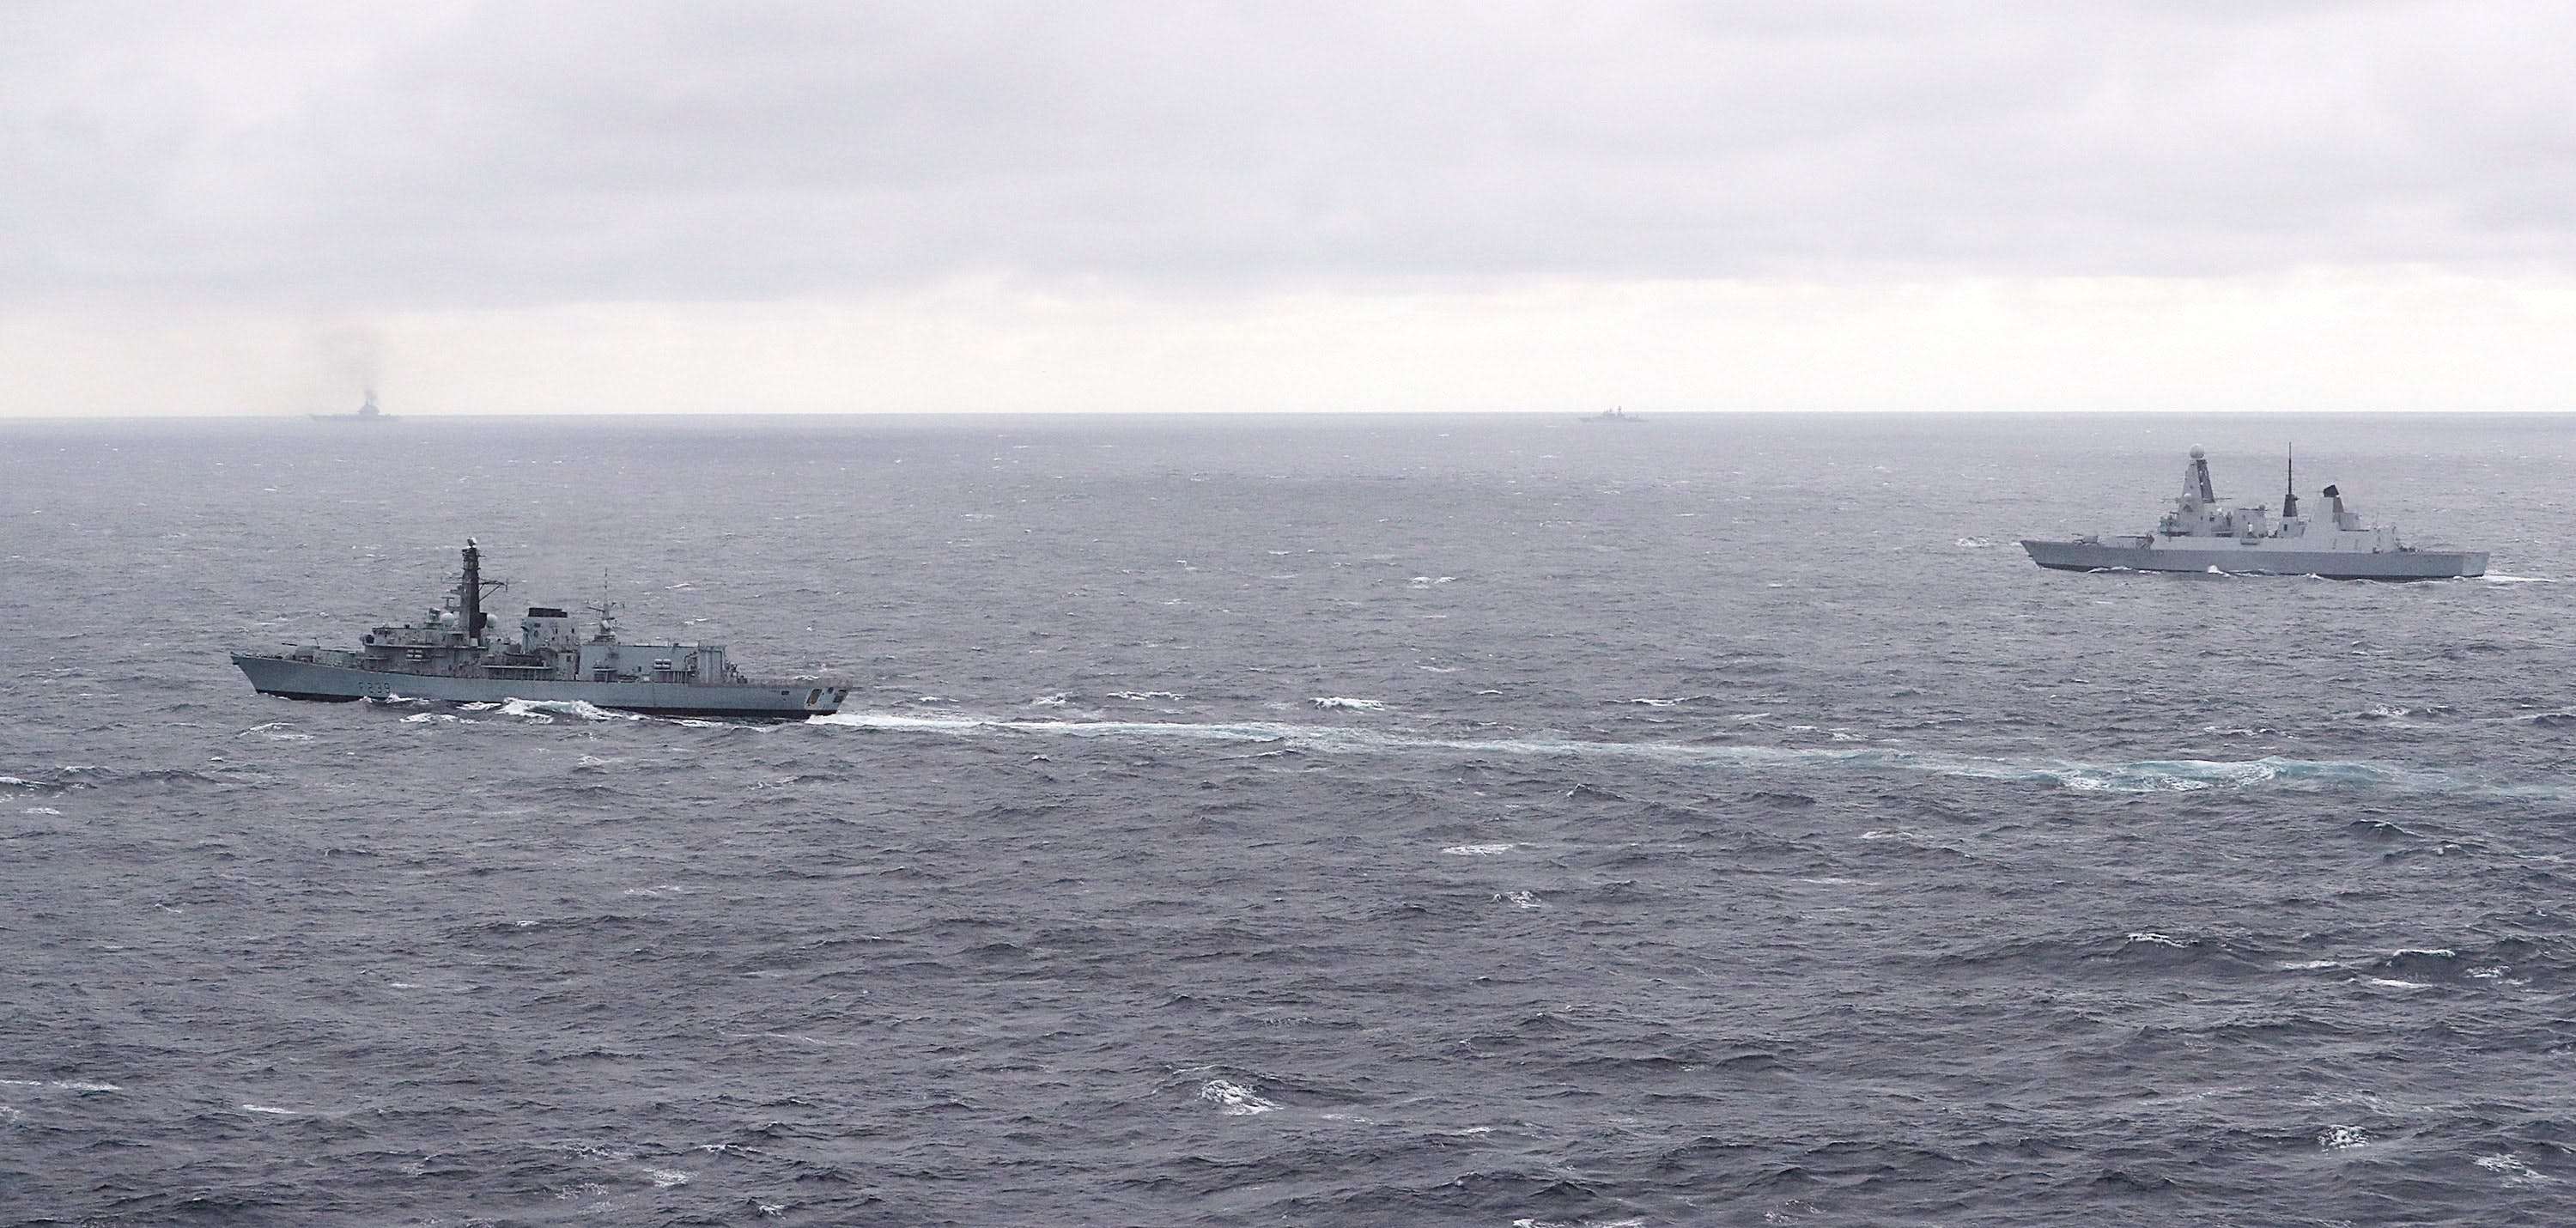 HMS DUNCAN ESCORTS RUSSIAN CARRIER TASK GROUP